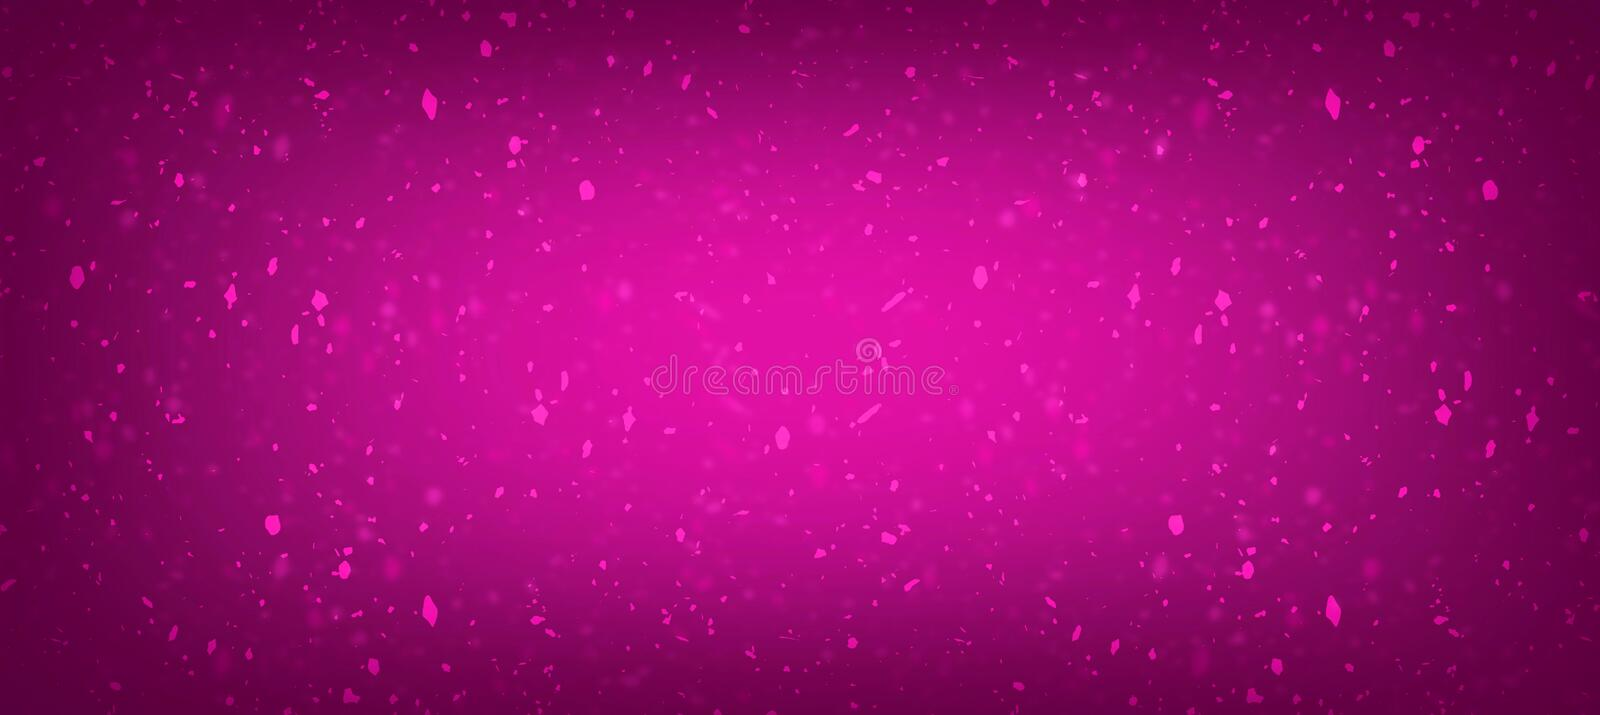 Pink with rose background textured gradient stock illustration